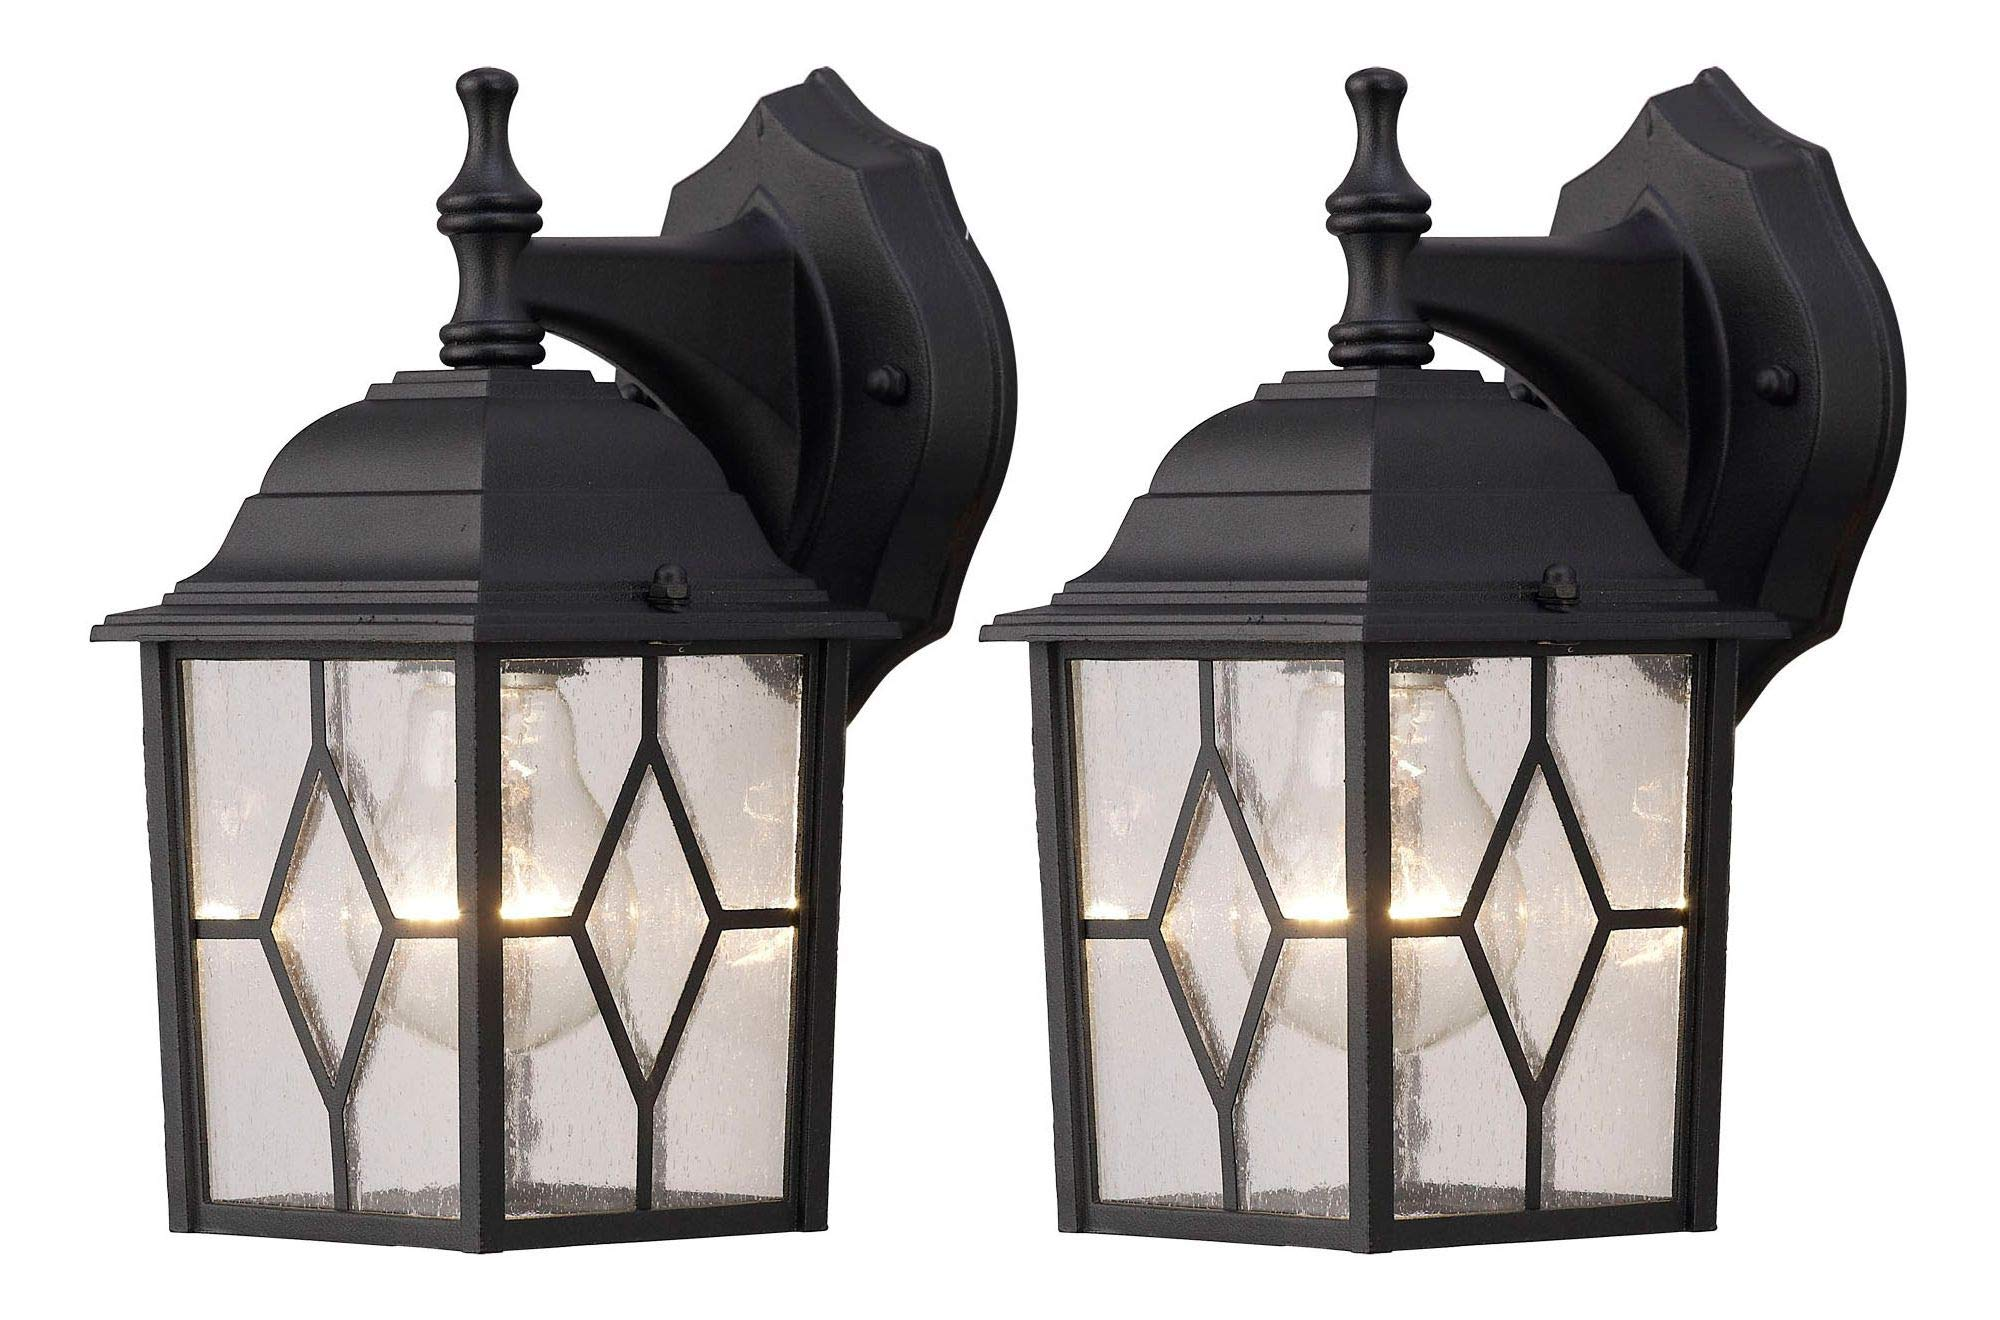 NOMA 2-Pack Outdoor Wall Lantern | Waterproof Outdoor Down-Facing Exterior Lights for Front Door, Backyard, Garage, Patio or Décor | Black Finish with Diamond Seeded Glass Panels, 2-Pack by Noma